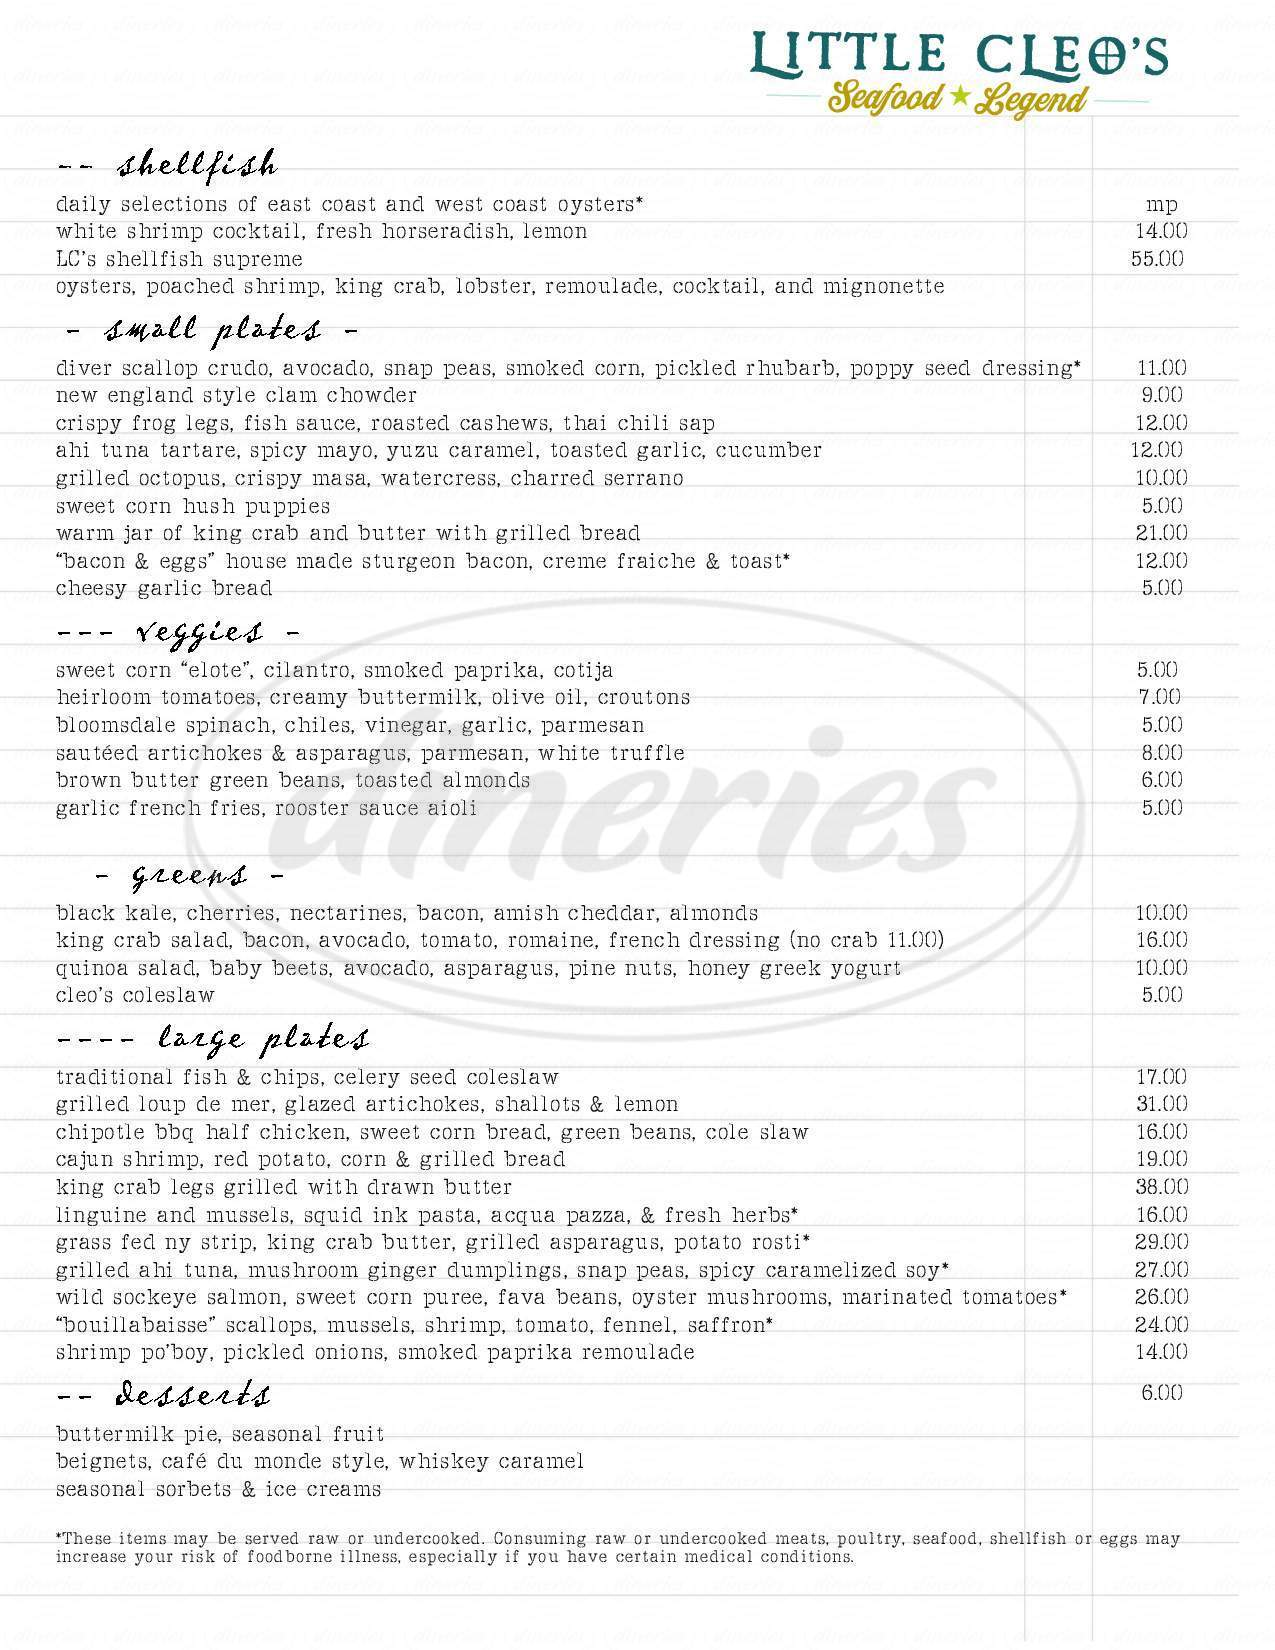 menu for Little Cleo's Seafood Legend